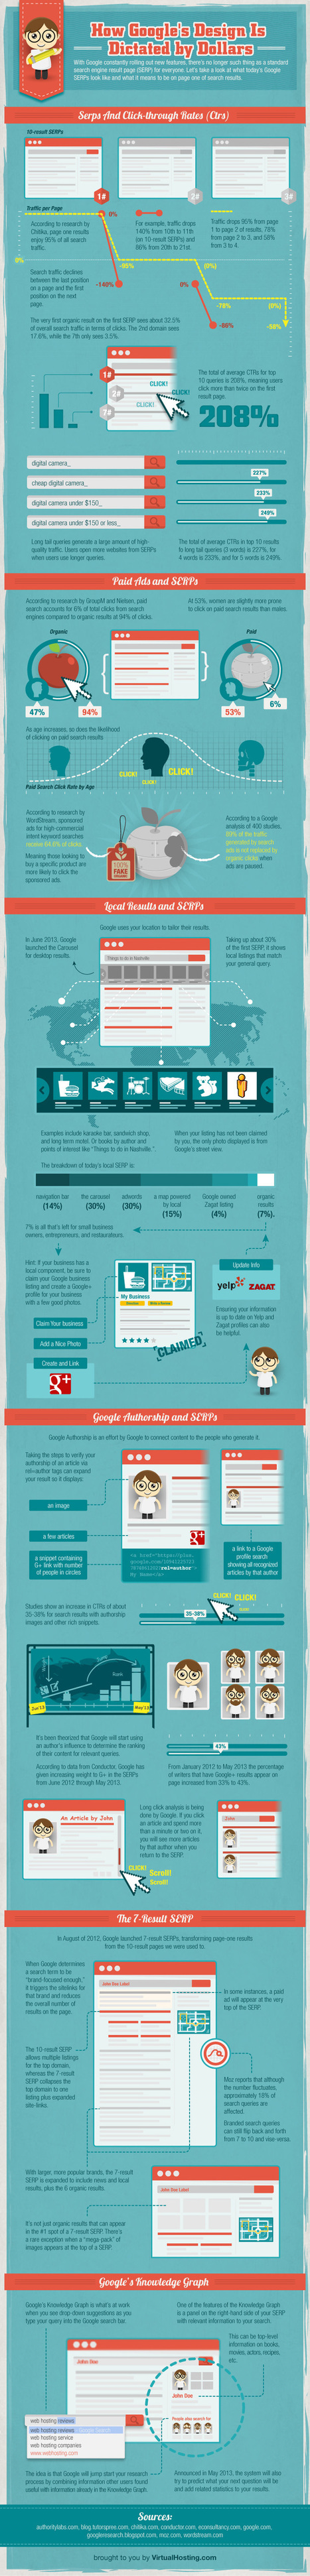 Google's Profit by Design [Infographic] | AnimalConservation | Scoop.it